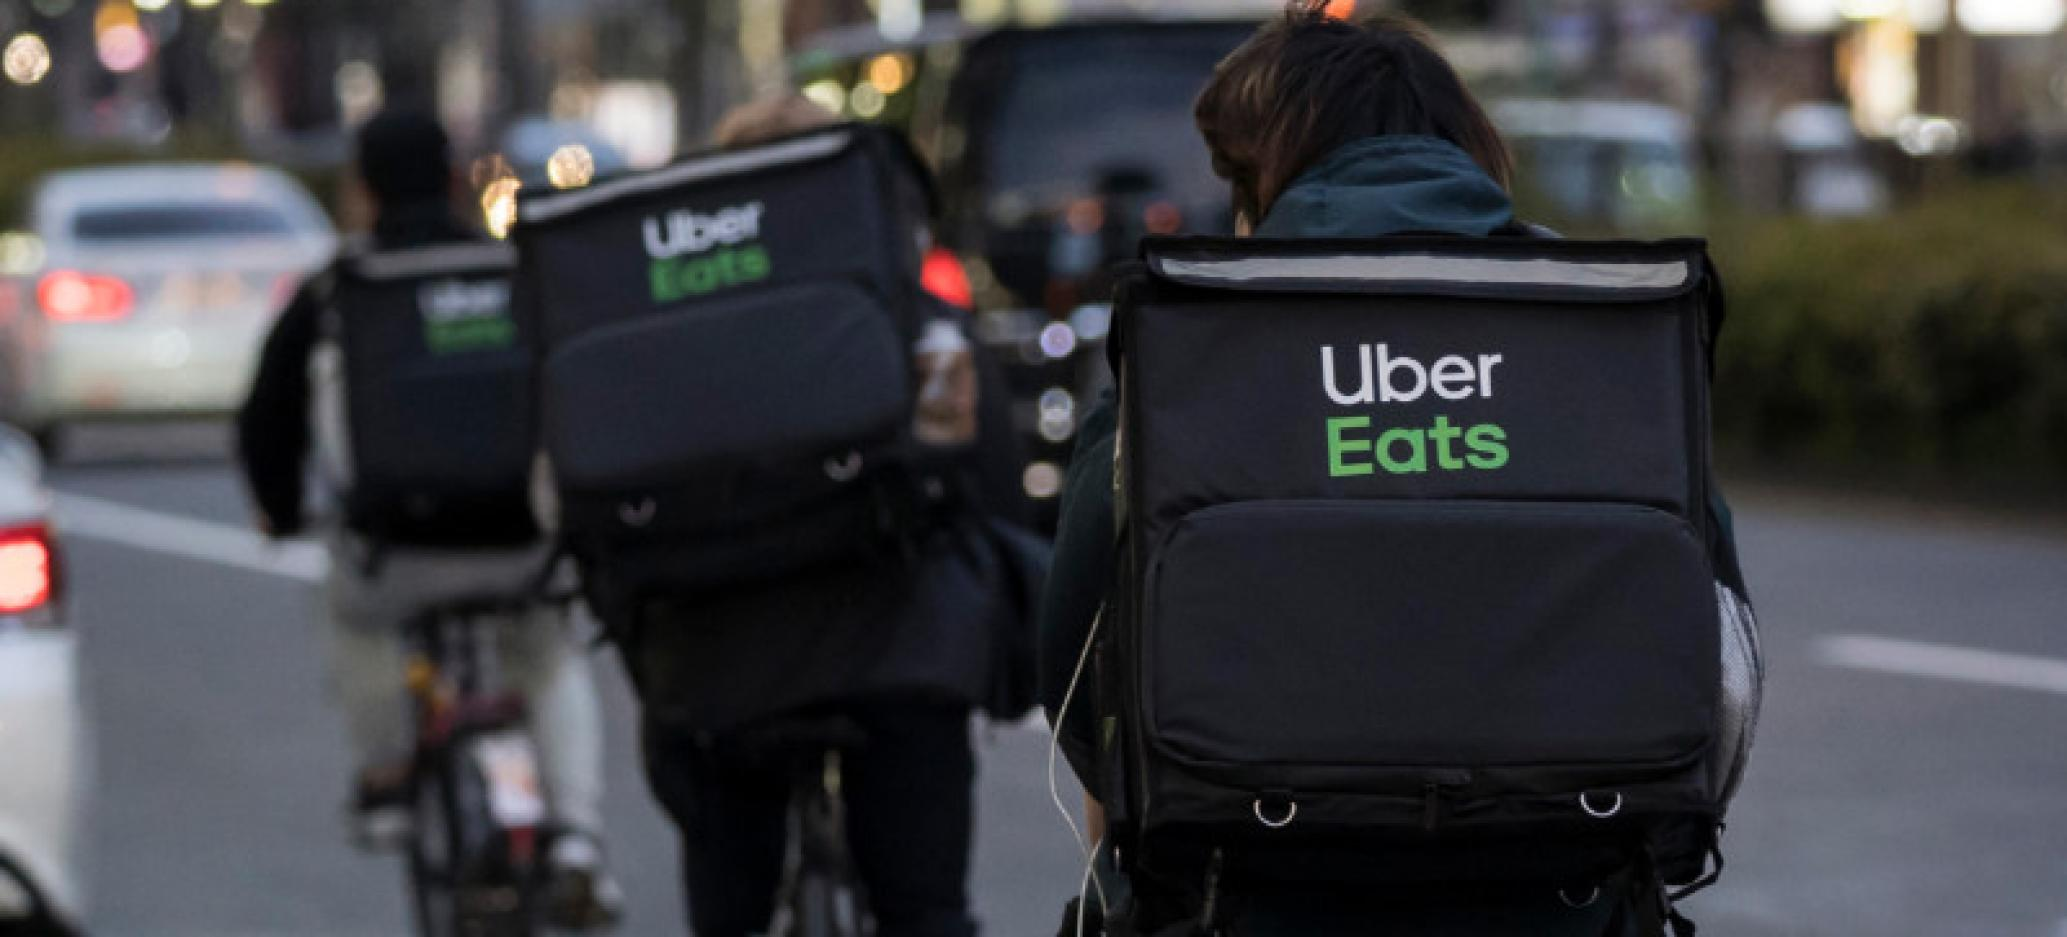 Food Delivery Apps Like Uber Eats and DoorDash Are Suing NYC Over Restaurant Fee Cap